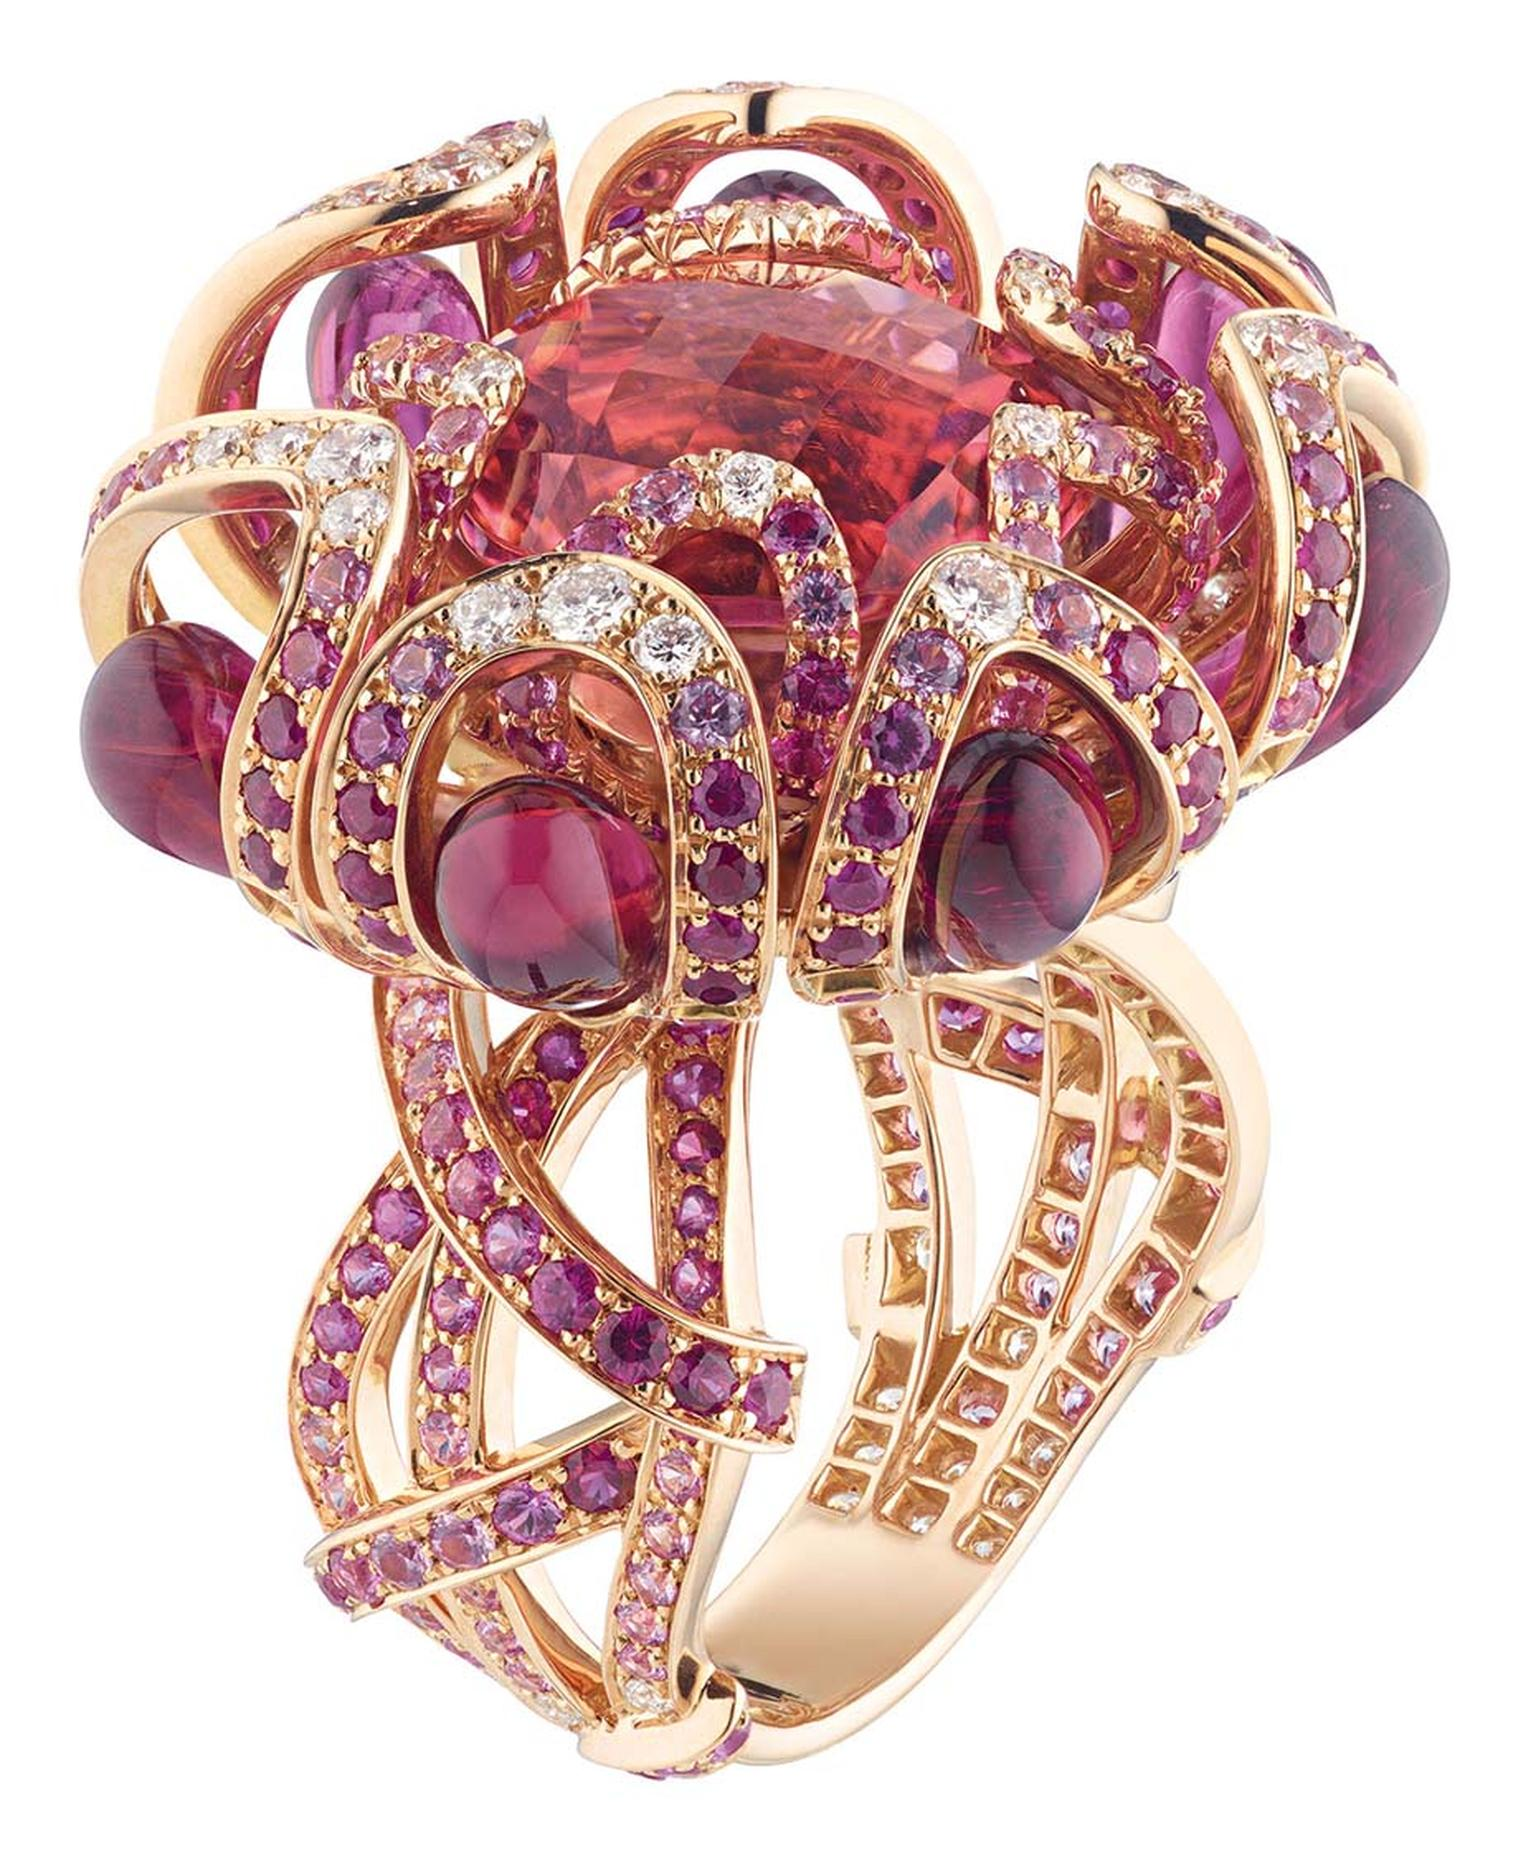 Chaumet Hortensia ring in rose gold, set with rubies, pink sapphires, diamonds, red tourmaline drops and an 8.60ct round faceted pink tourmaline in the centre.